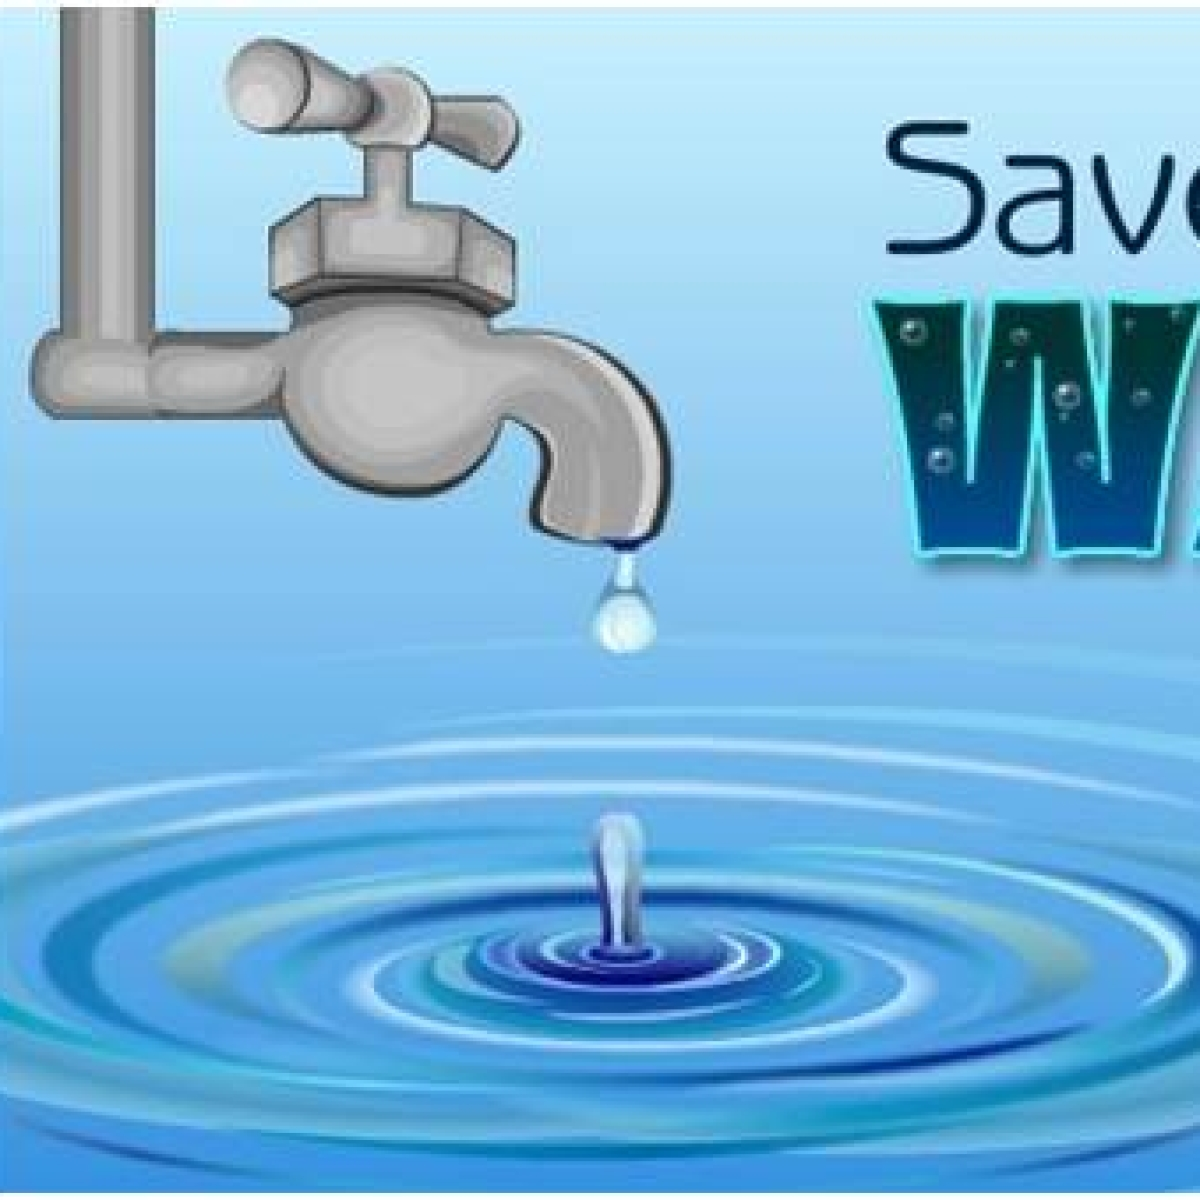 Bhopal: NGOs take up water conservation drive in city